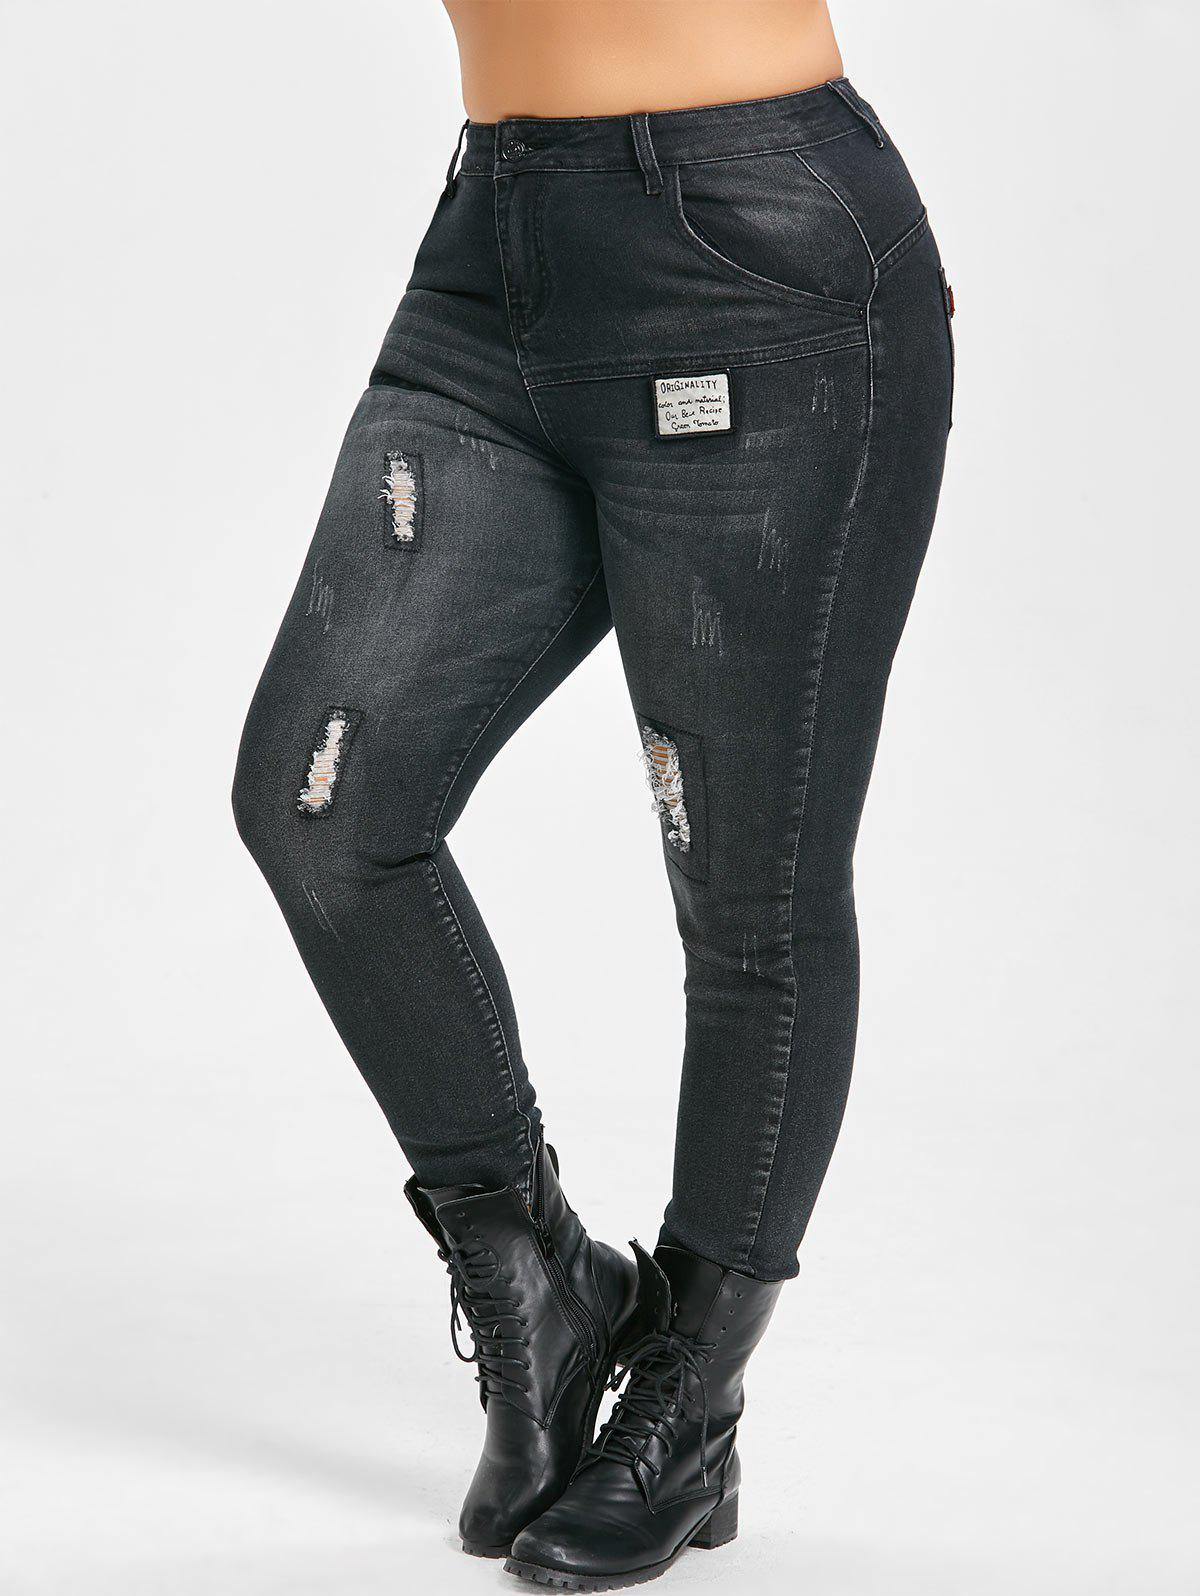 Plus Size Slim Patches Distressed Cigarette JeansWOMEN<br><br>Size: 5XL; Color: BLACK; Style: Fashion; Length: Ninth; Material: Polyester; Fit Type: Skinny; Waist Type: Mid; Closure Type: Zipper Fly; Pattern Type: Others; Embellishment: Spliced; Pant Style: Pencil Pants; Weight: 0.5600kg; Package Contents: 1 x Jeans;